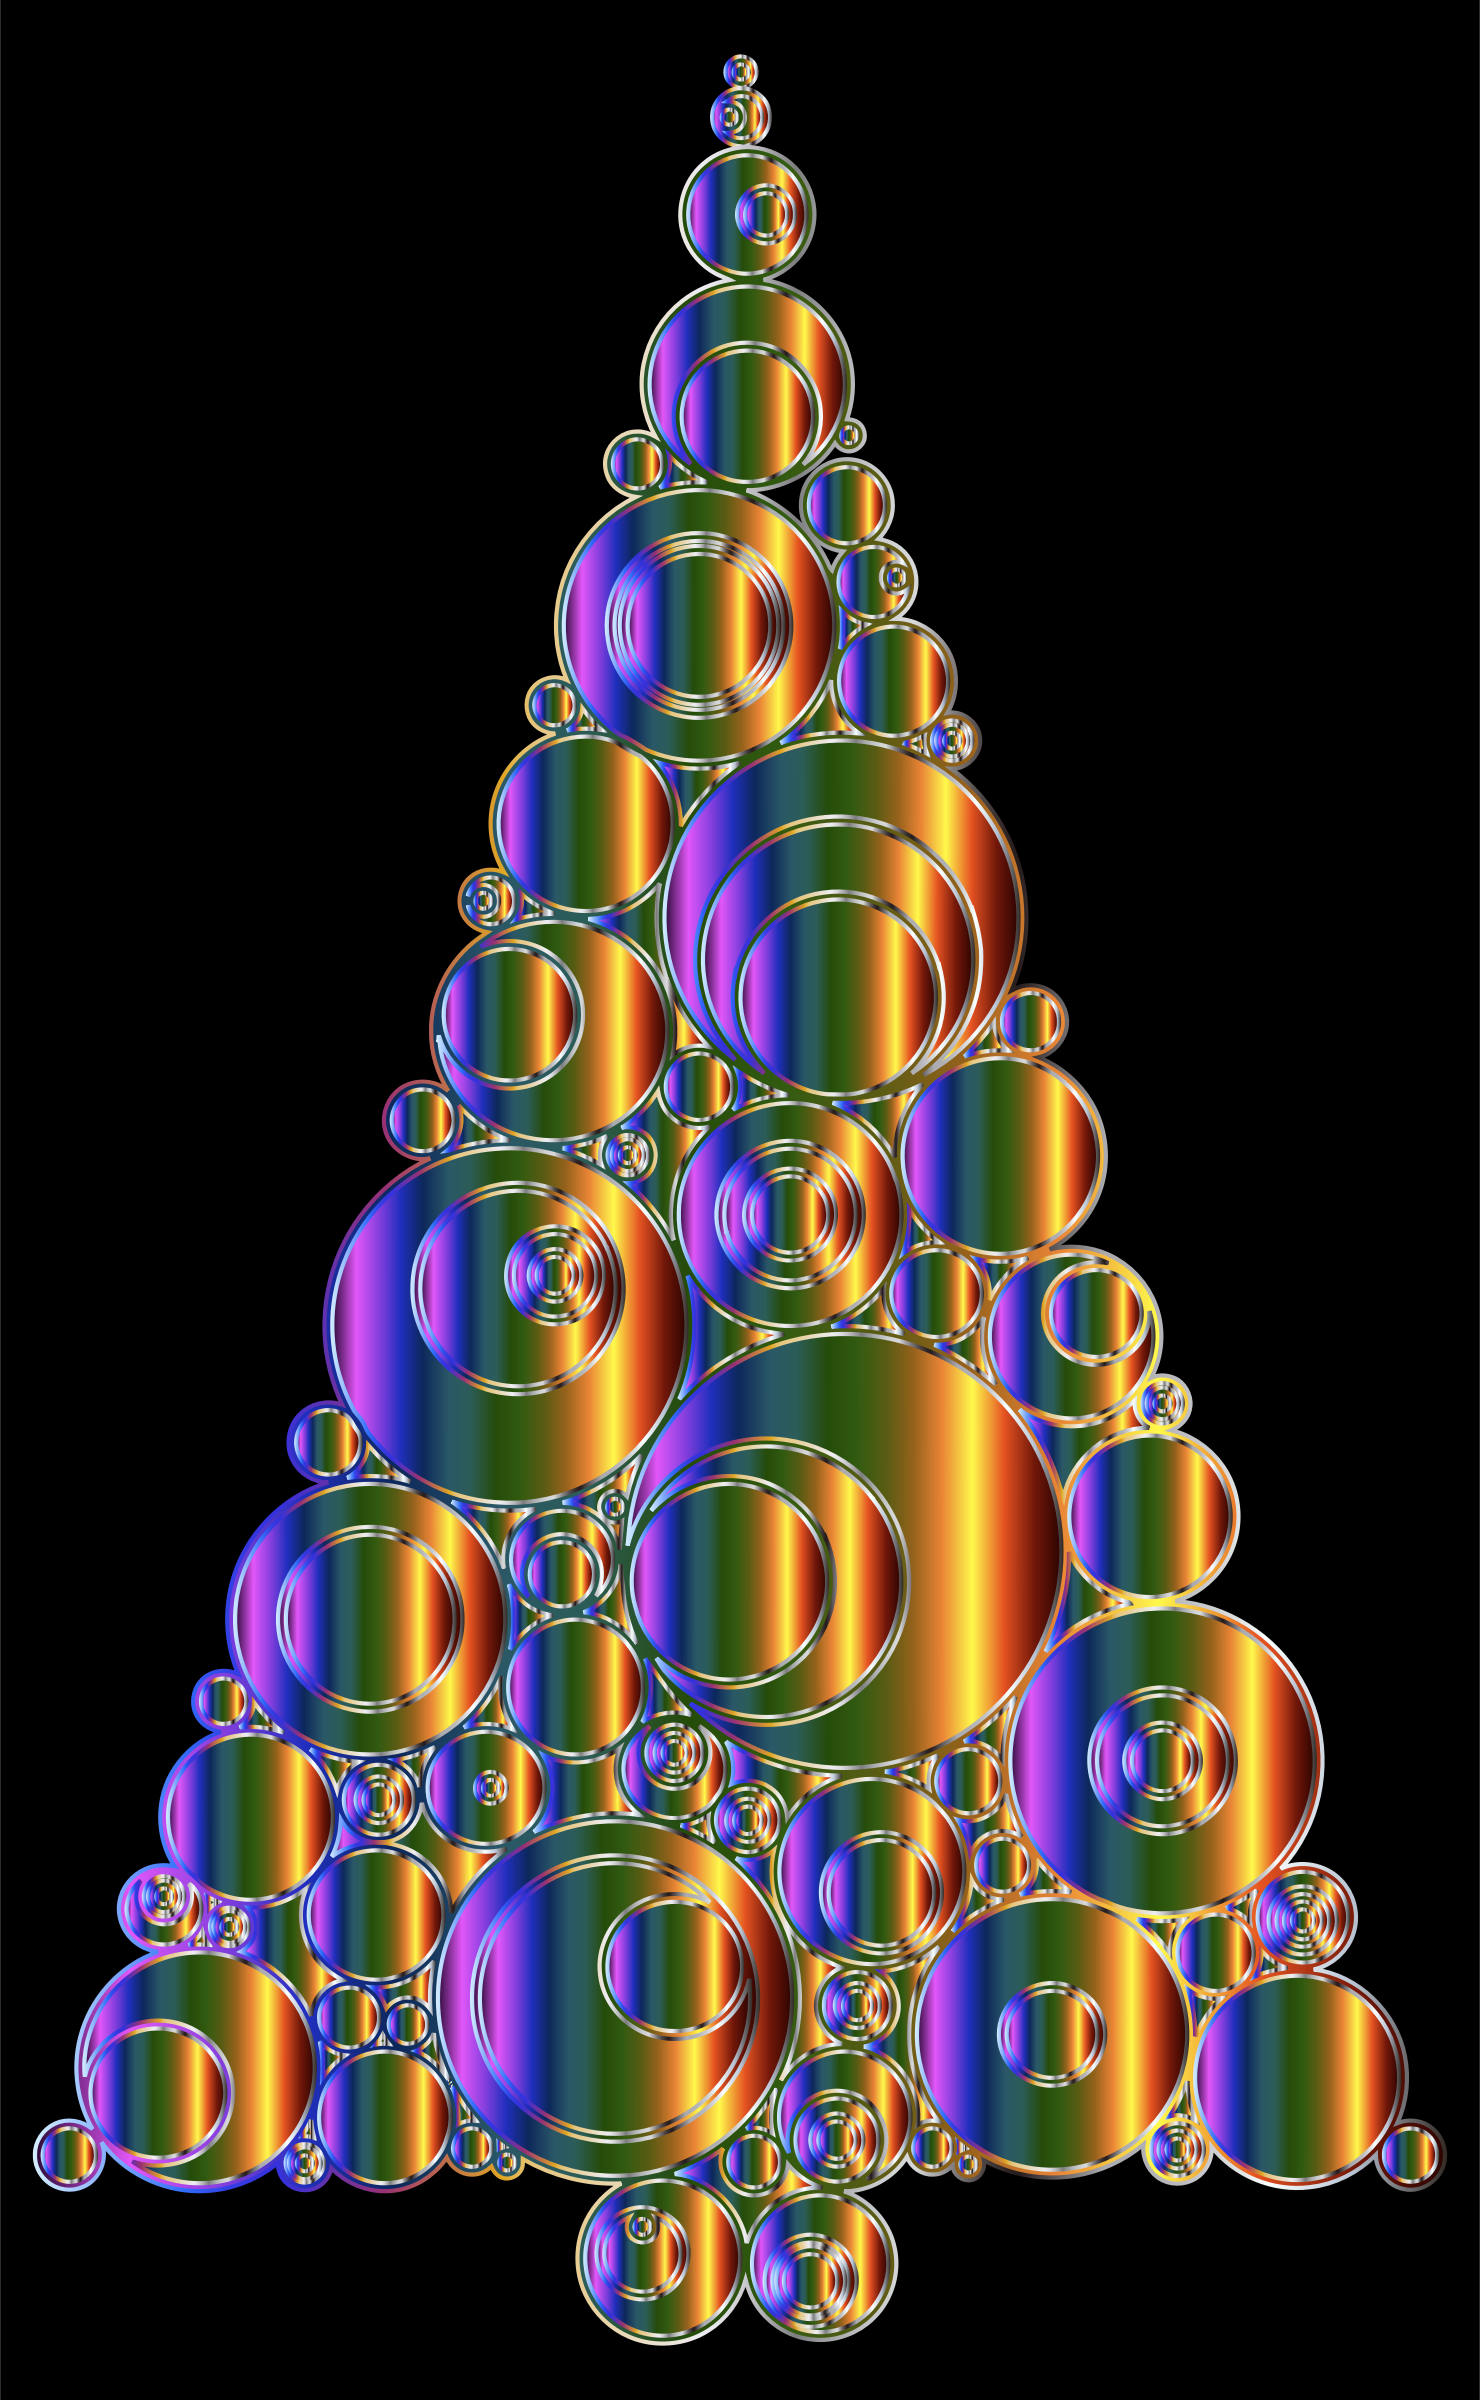 Colorful Abstract Circles Christmas Tree 6 Variation 4 by GDJ